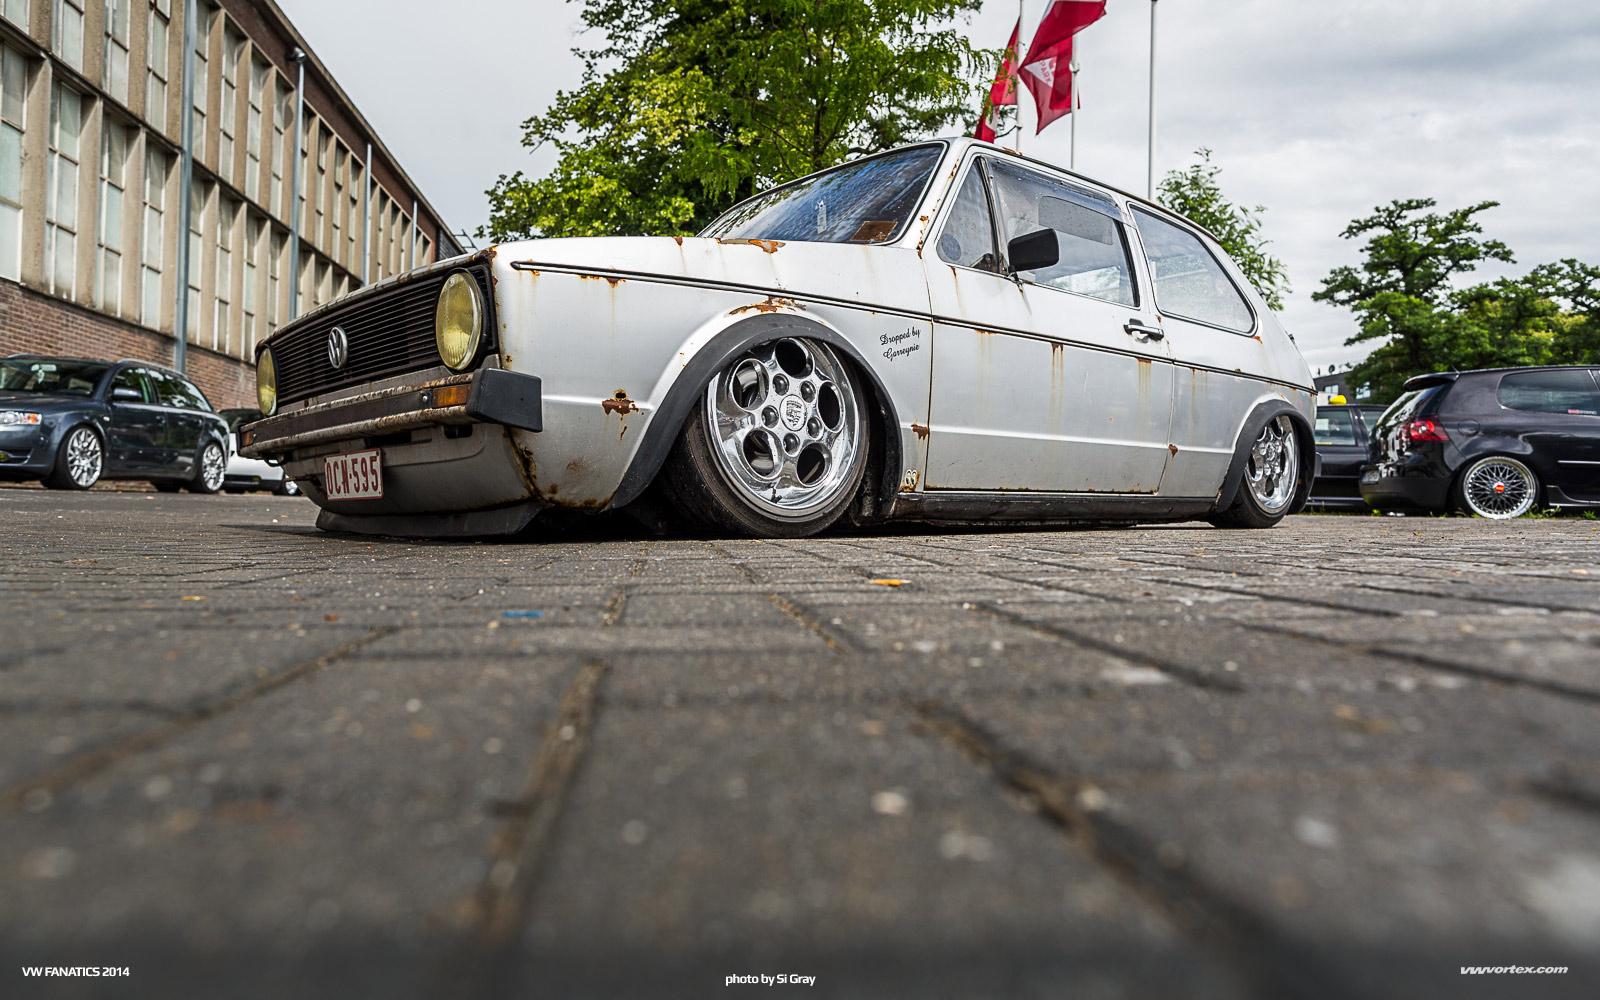 VWFanatics-2014-Si-Gray-481